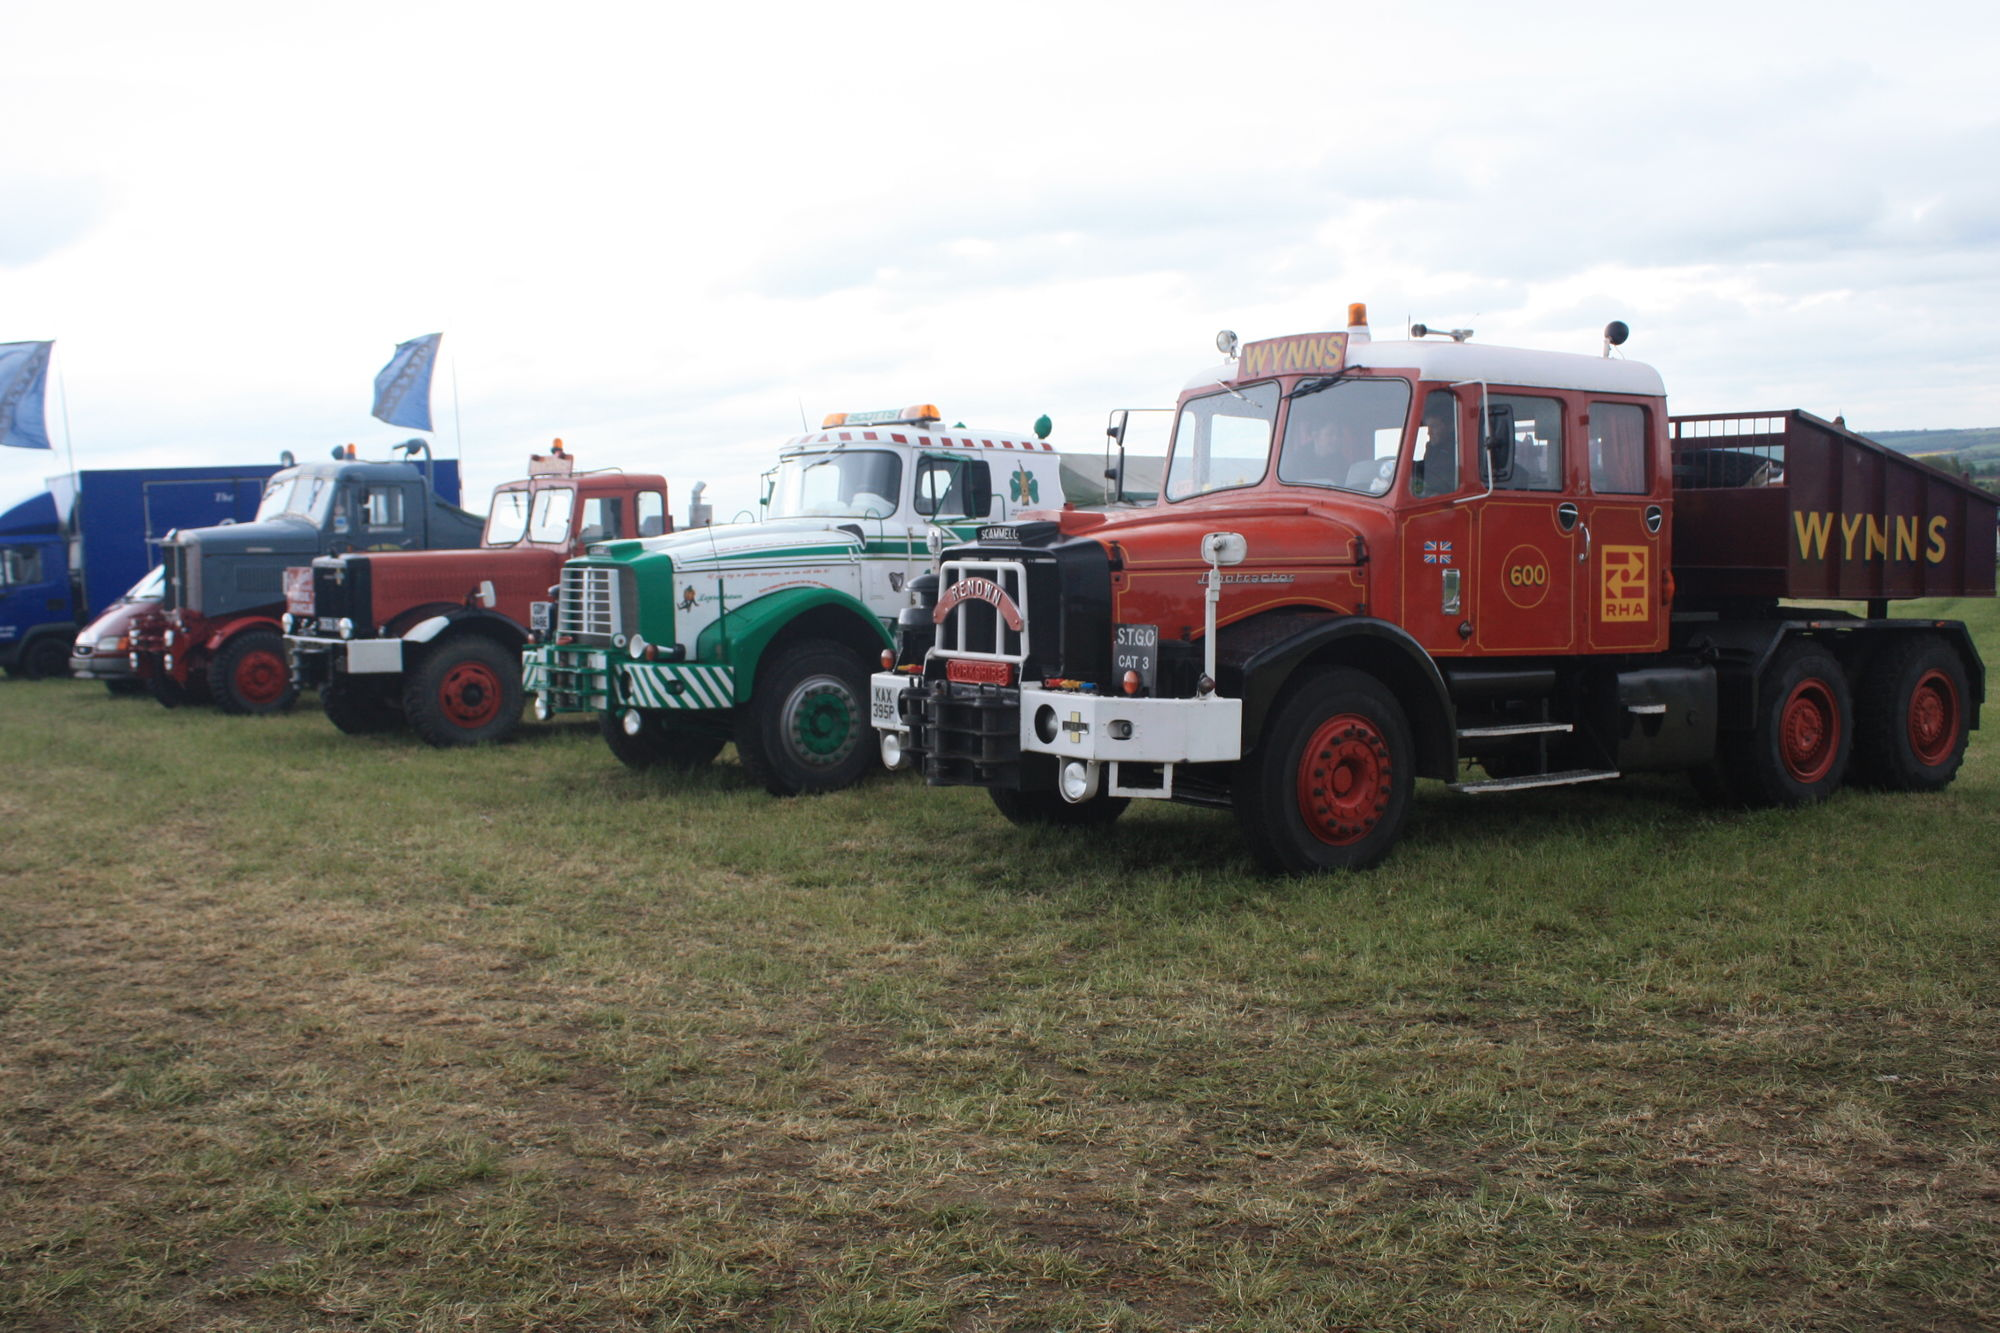 Scammell tractor photo - 8